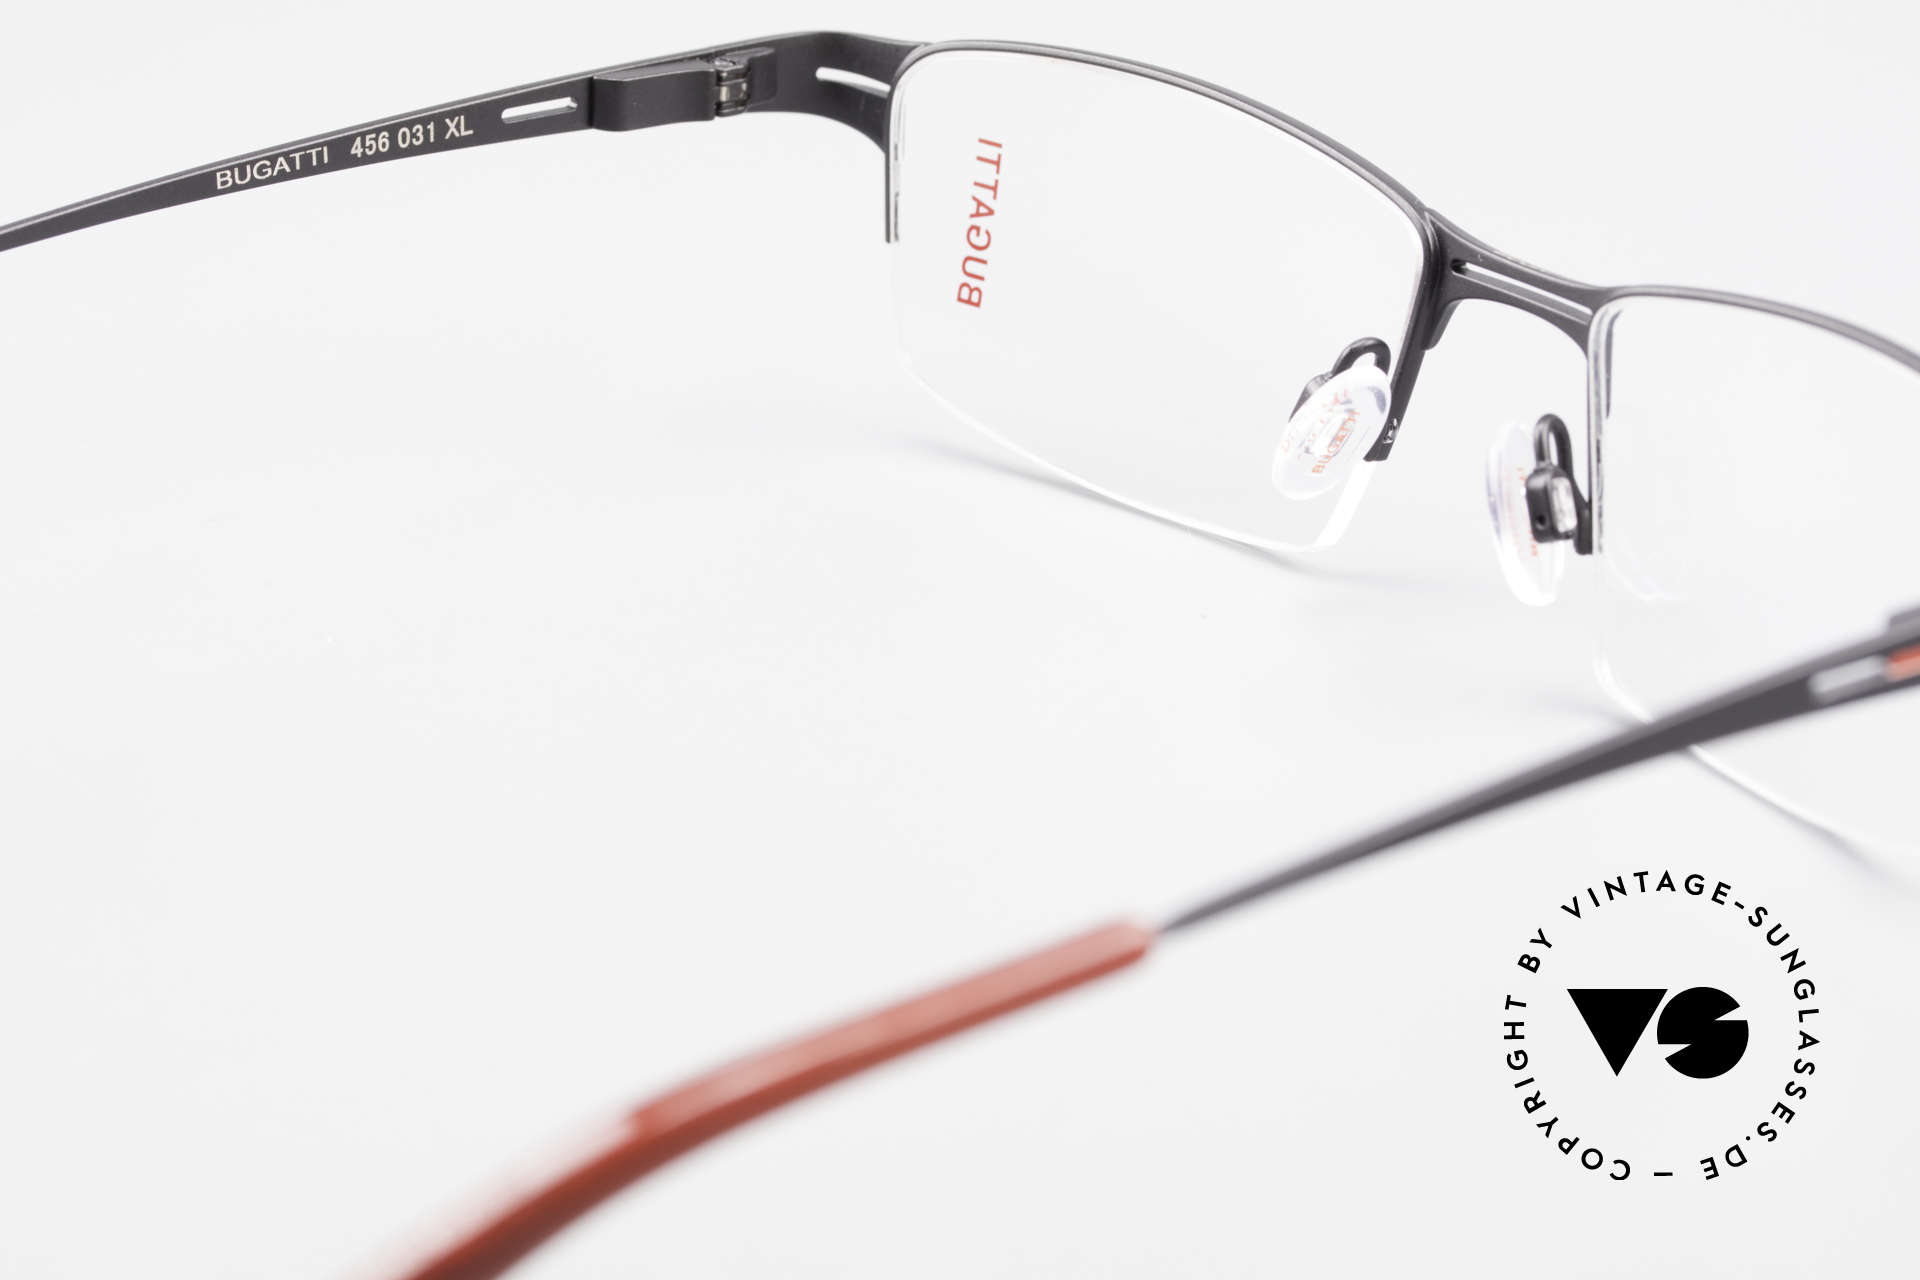 Bugatti 456 Titanium Eyeglass-Frame Nylor, NO RETRO specs, but an approx. 15 years old rarity, Made for Men